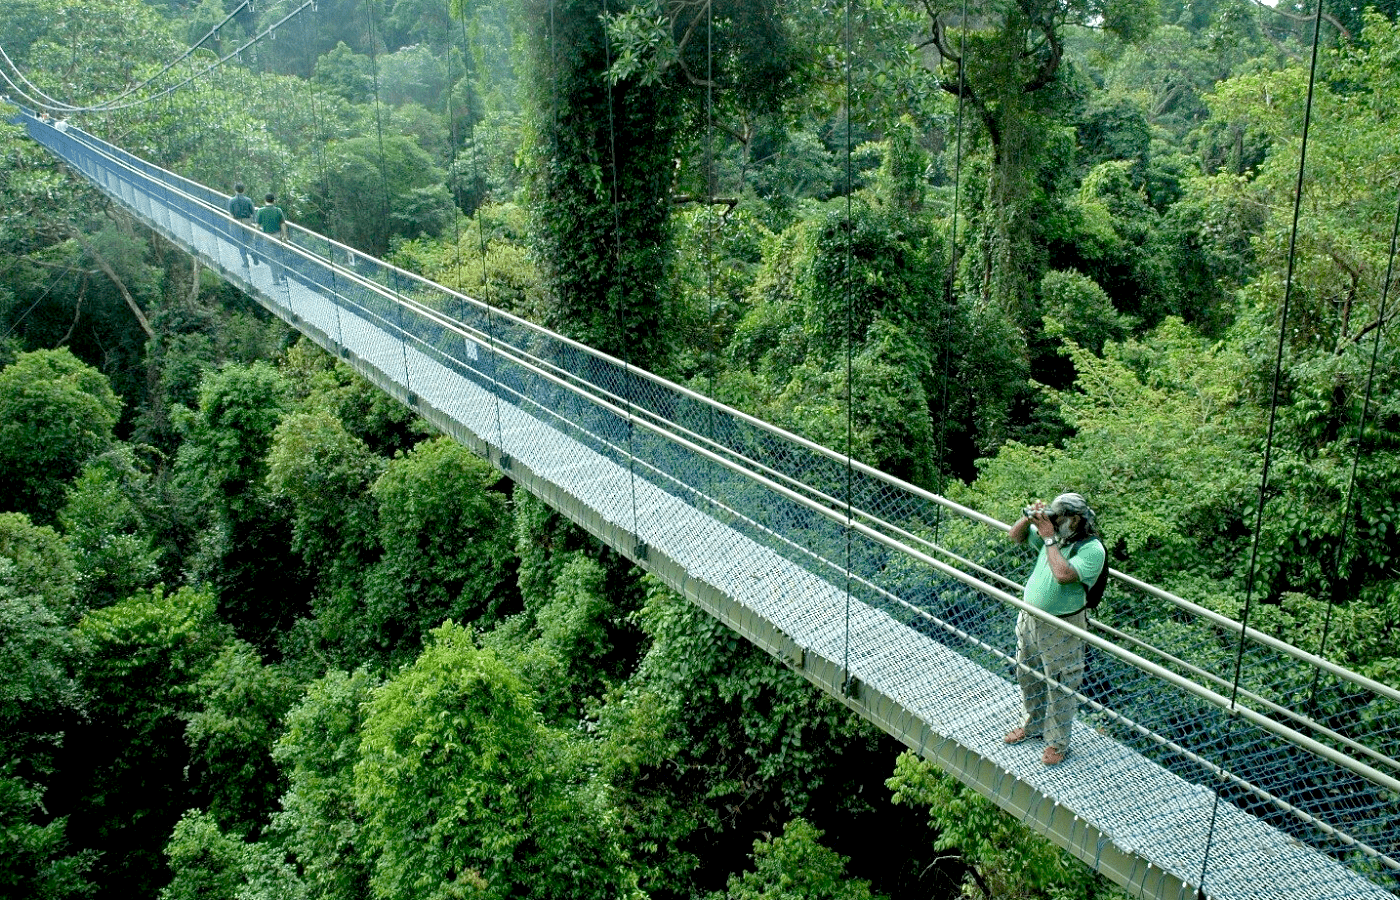 macritchie treetop walk for nature views